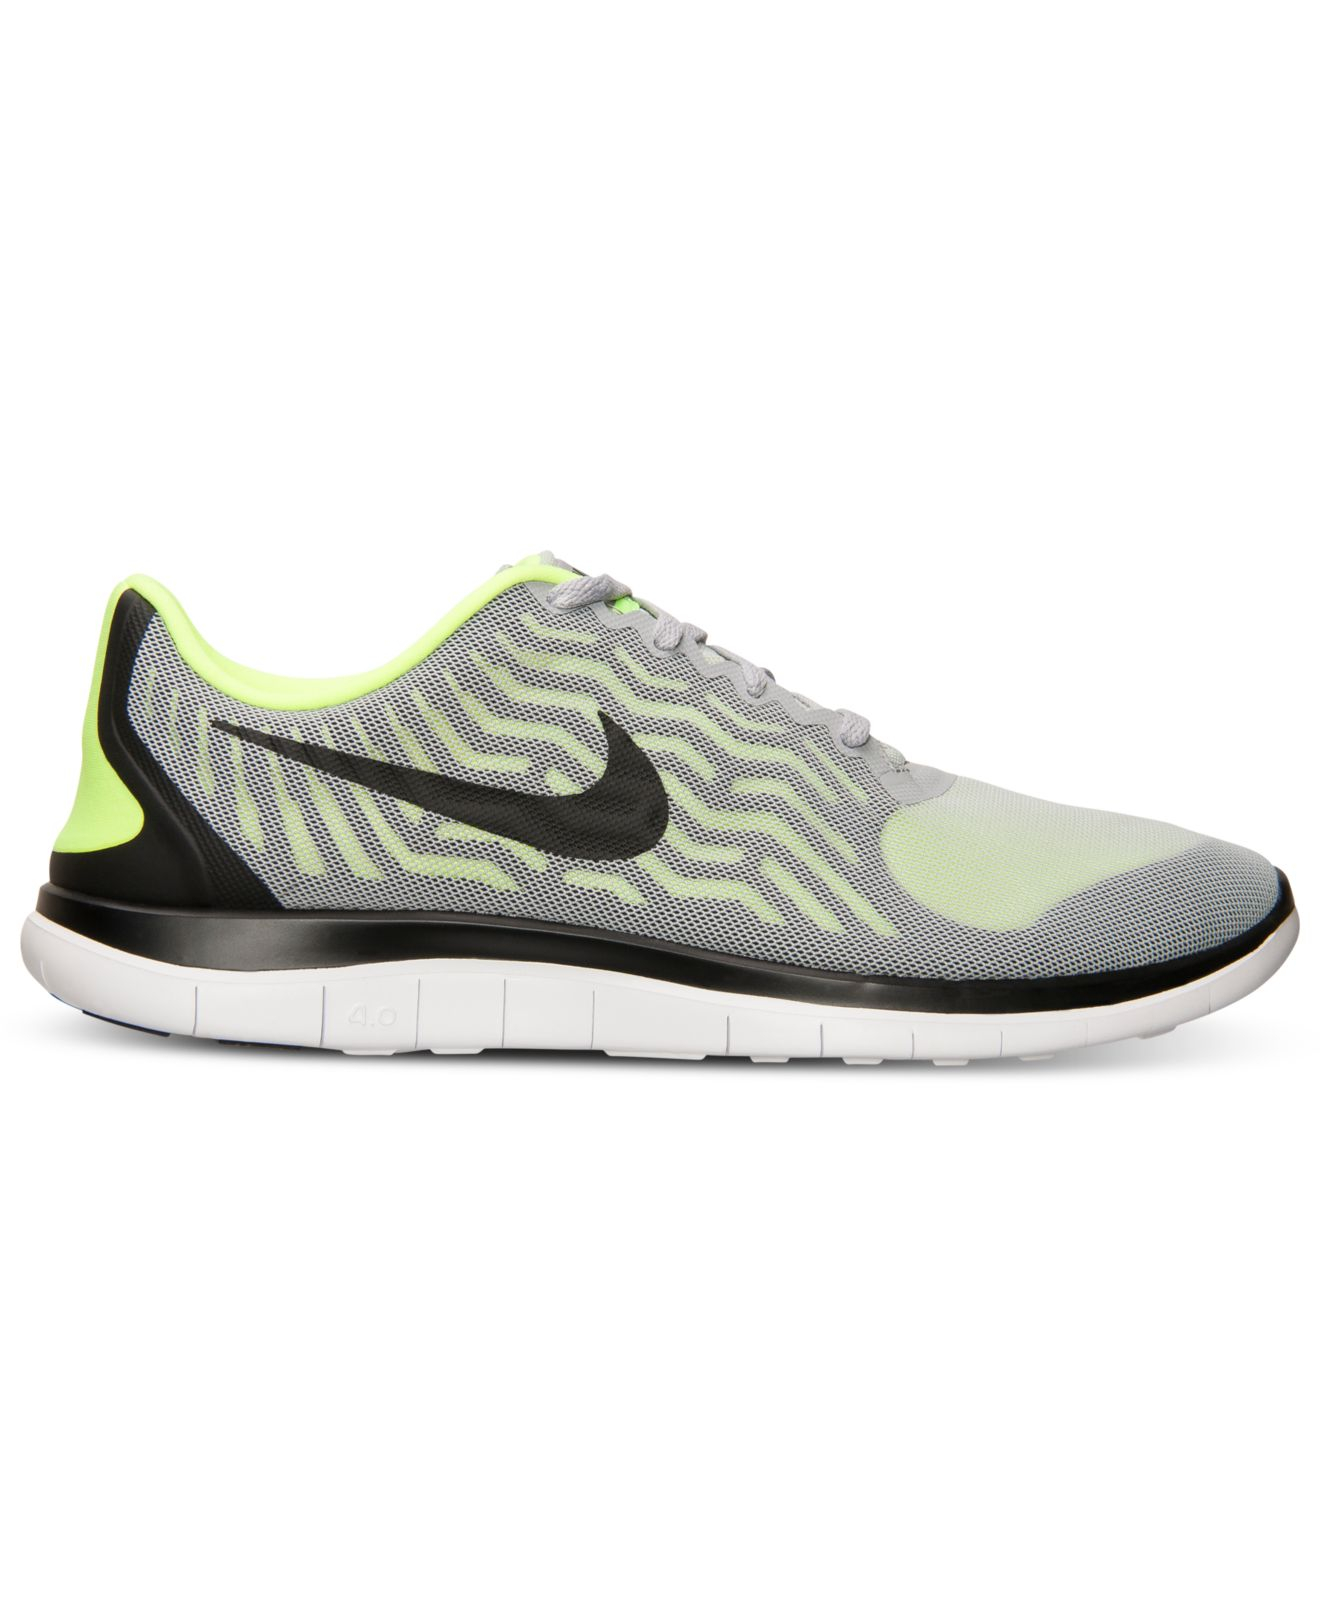 online store ec0ab 31086 Previously sold at  Macy s · Men s Running Sneakers Men s Nike Free Nike  Free 4.0 ...